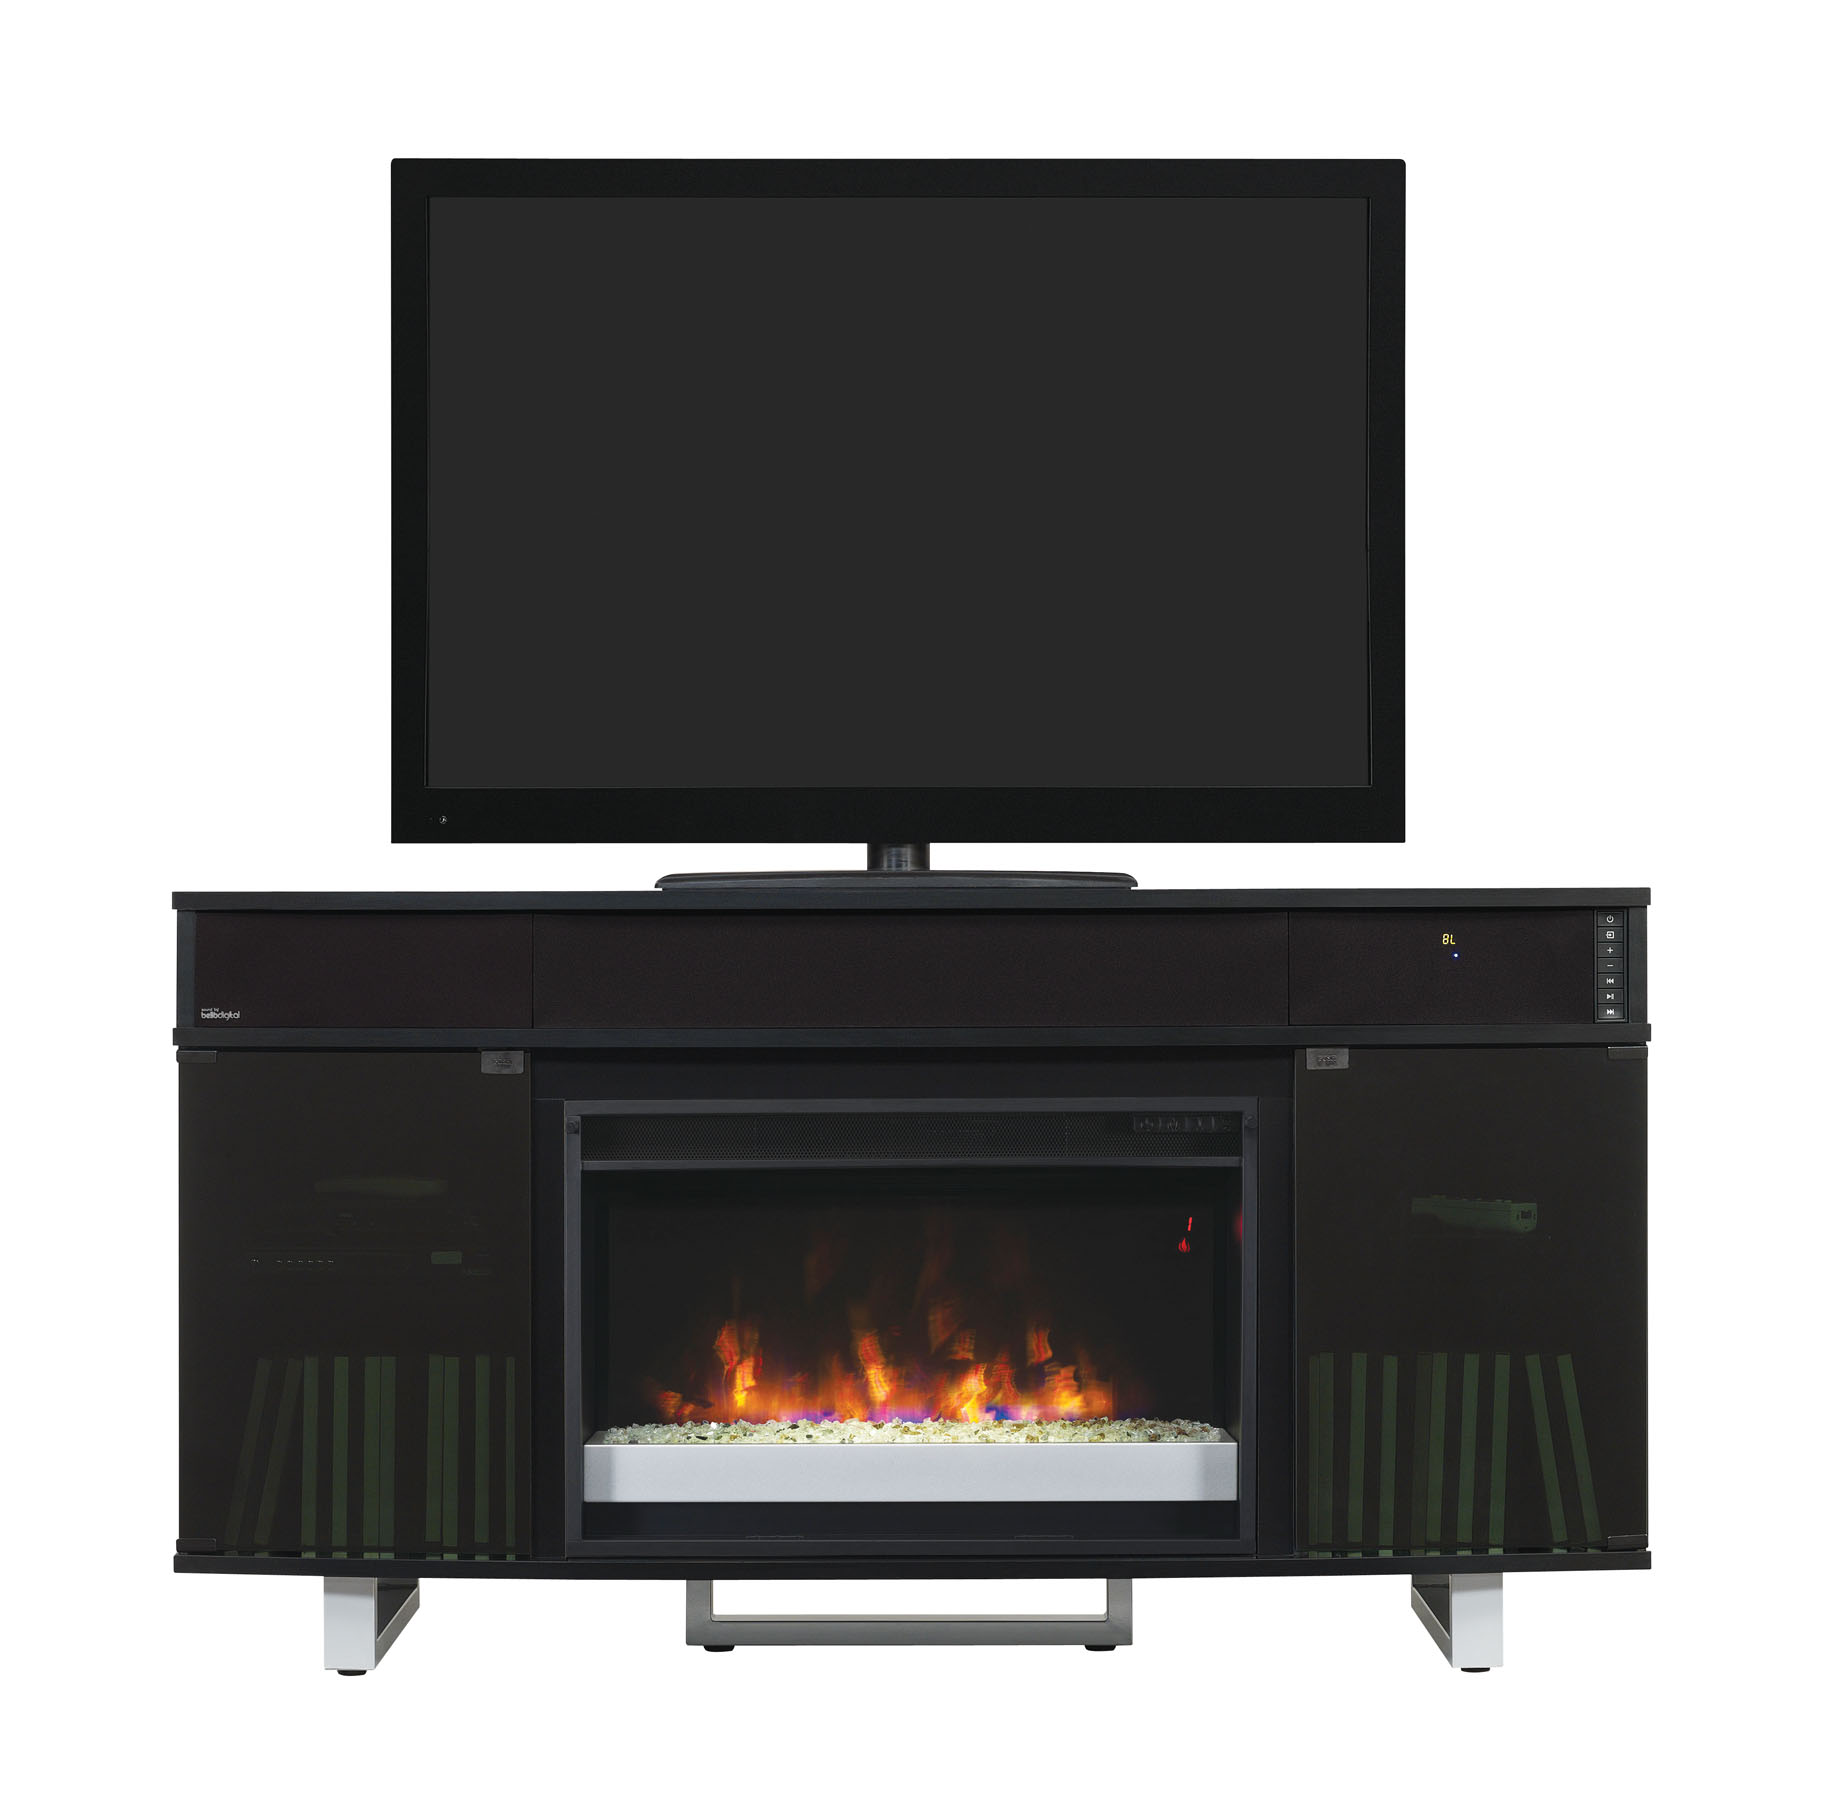 56 New Enterprise Infrared Media Electric Fireplace W Bluetooth Speakers